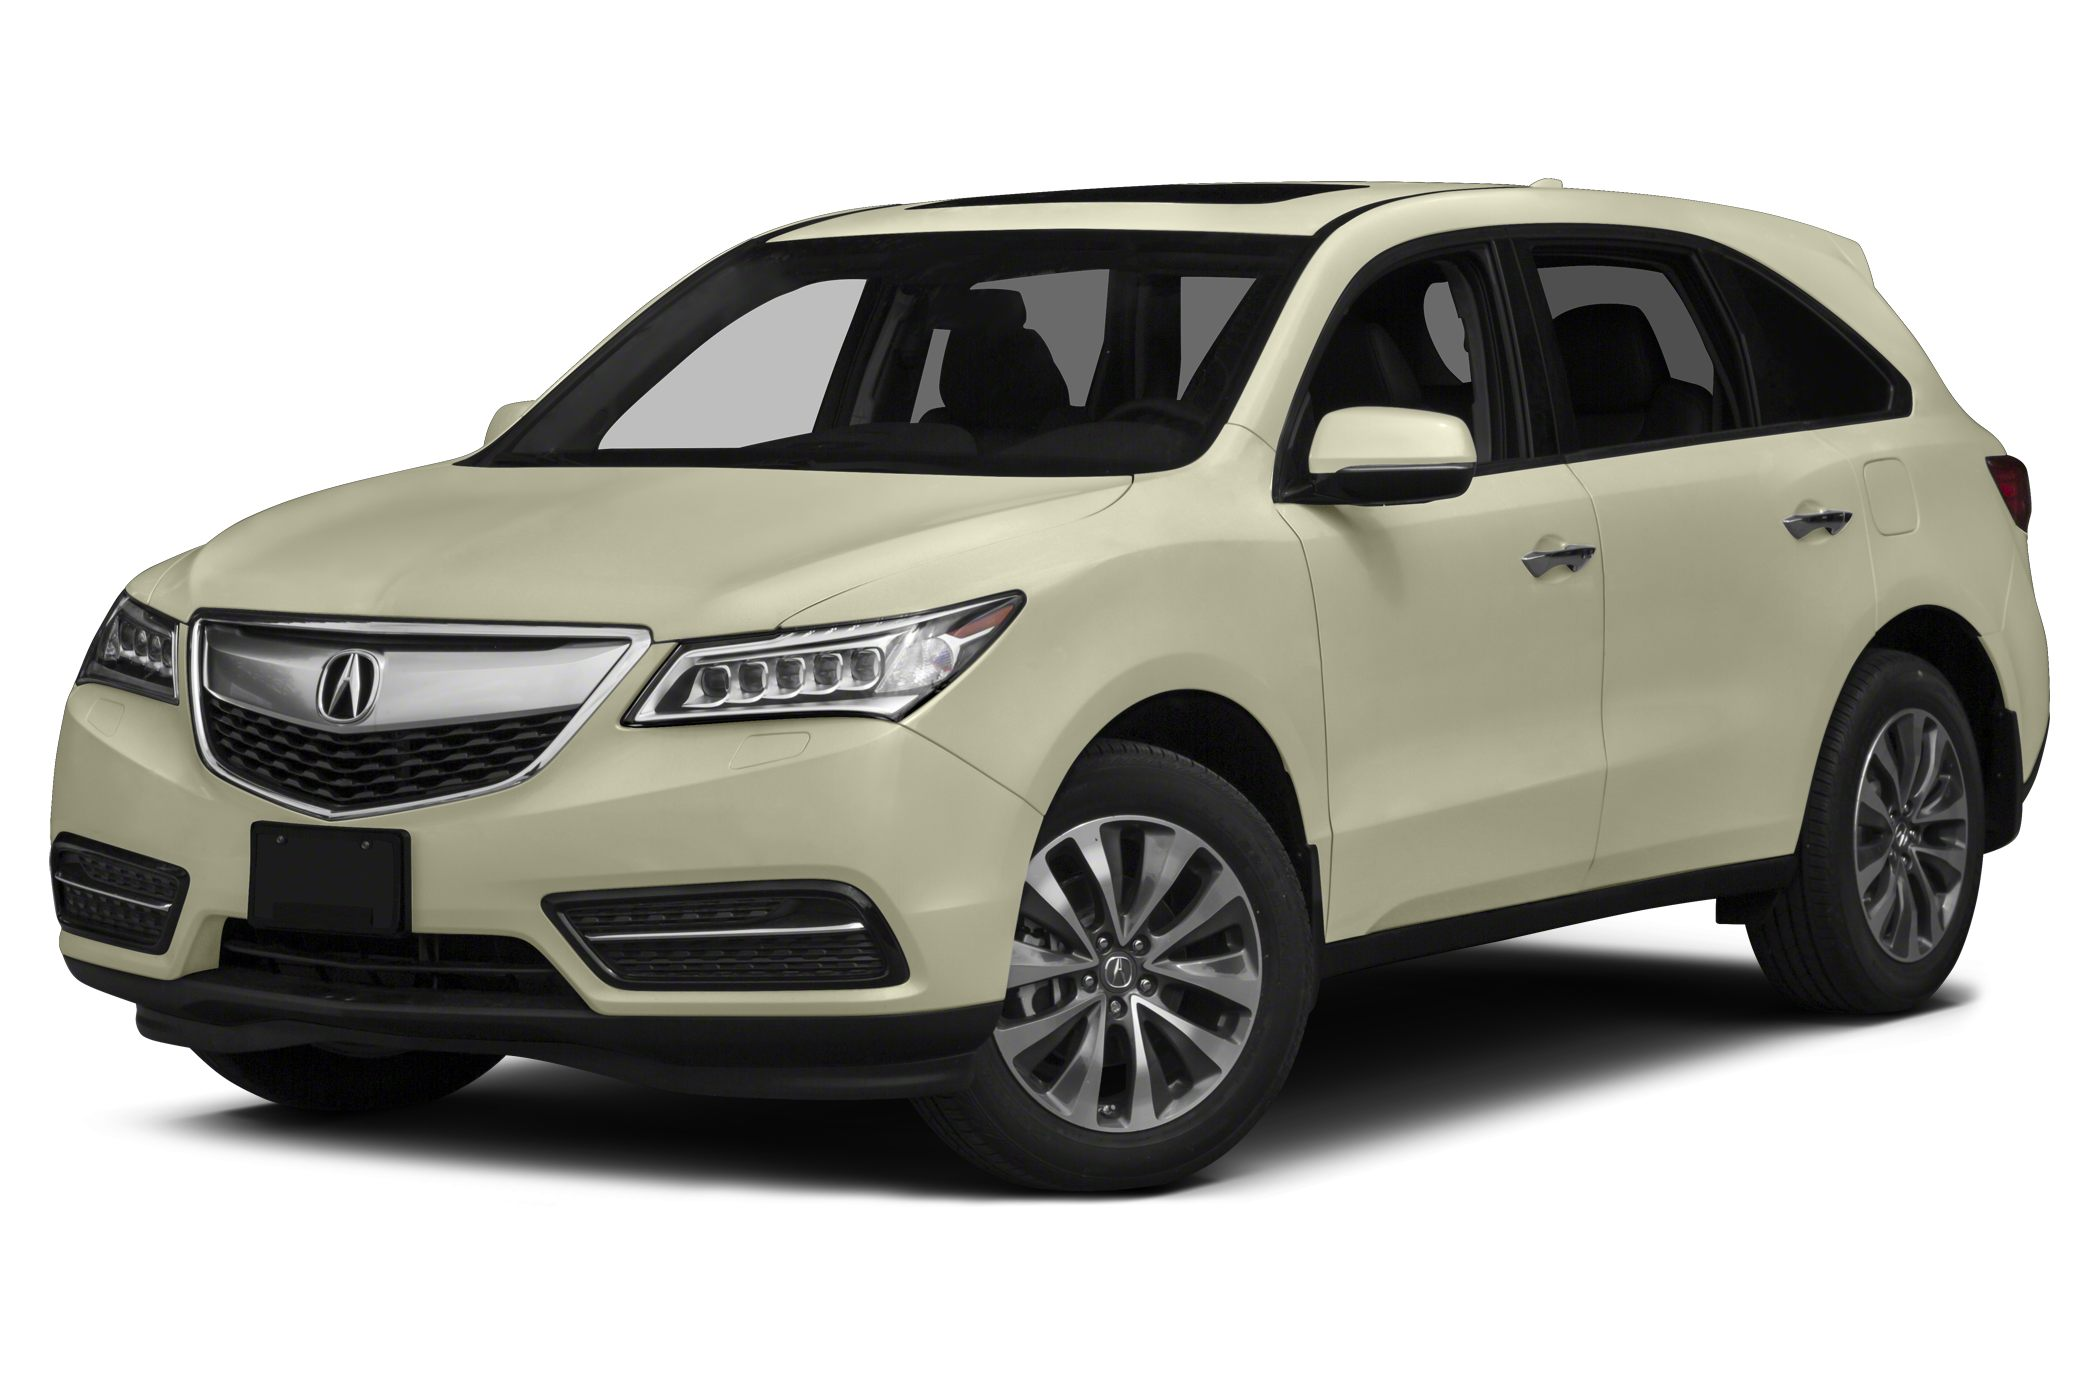 2014 Acura MDX 35 Technology Take a LOOK its a 2014 Acura MDX wTech Local Trade-in with a Gre